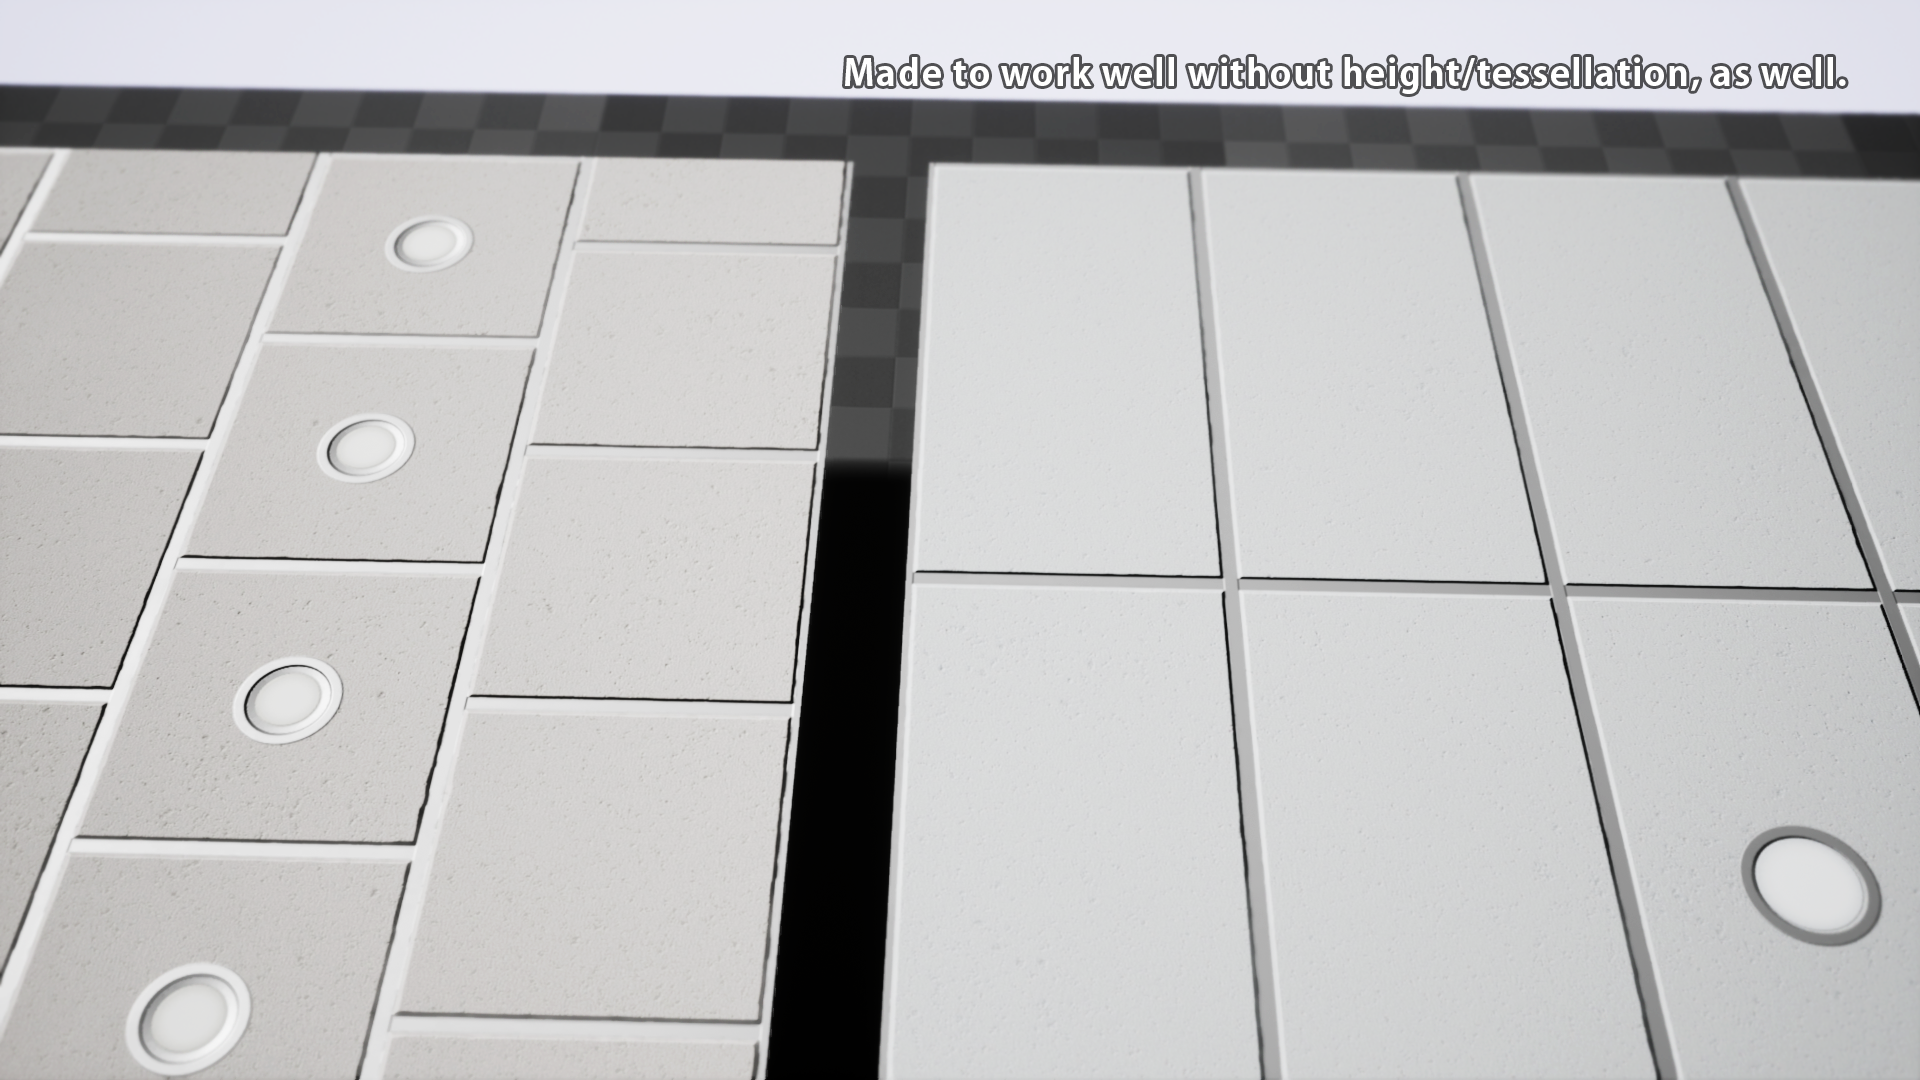 Office Ceiling Tiles By Dc Assets In Materials Ue4 Marketplace